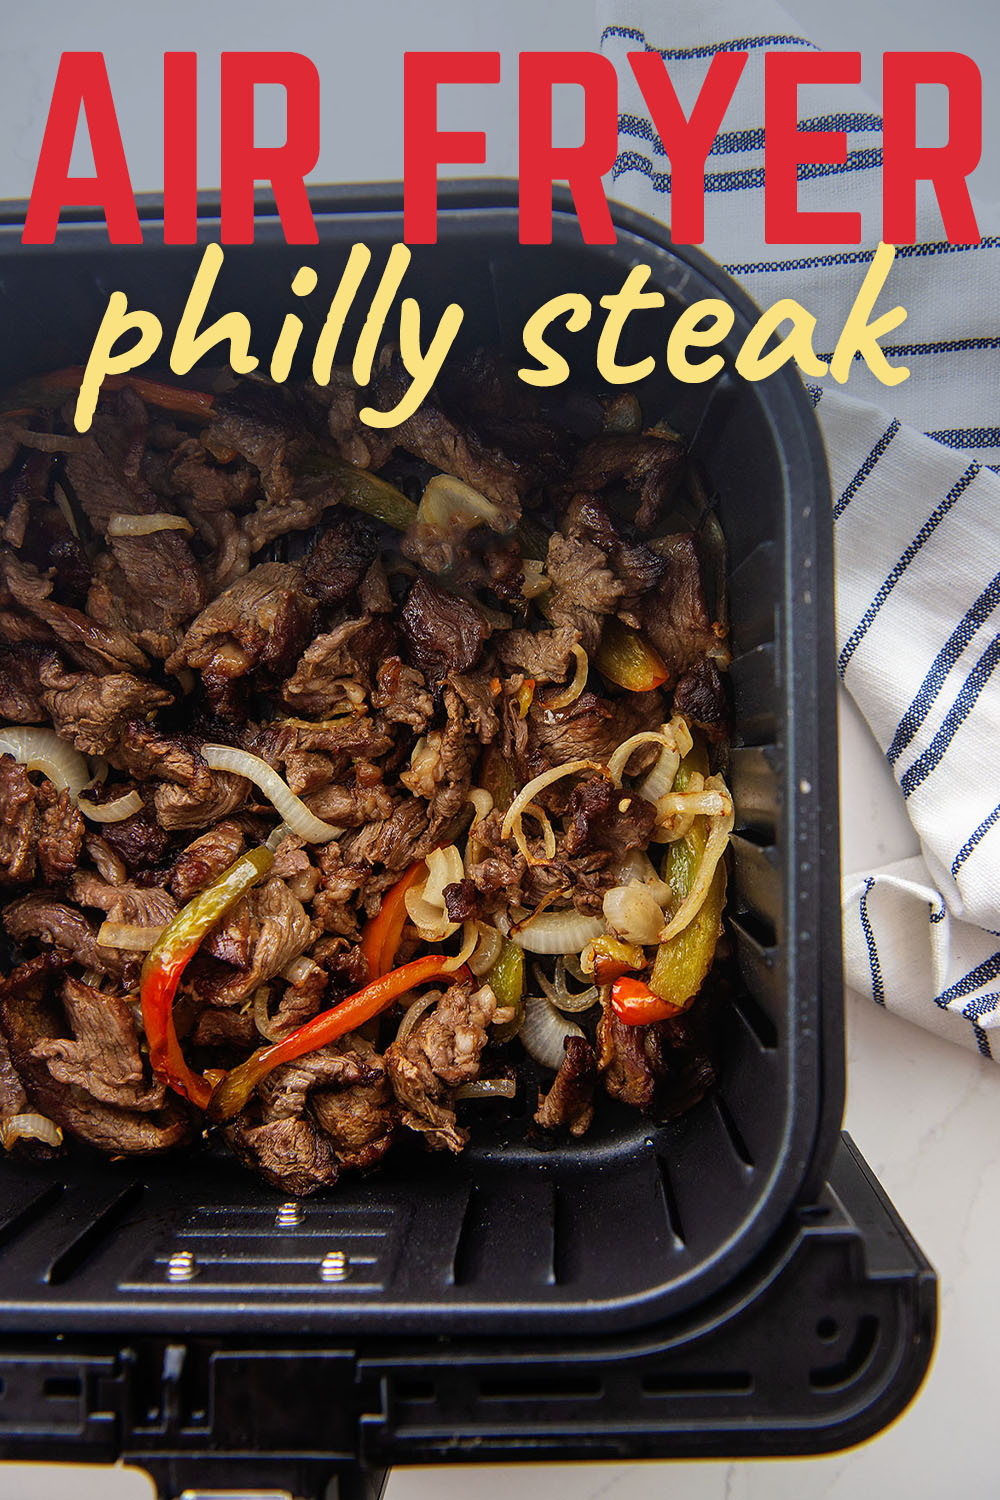 We use our air fryer to cook all the wonderful ingredients of our Philly cheesesteak to perfection!  Very easy, and totally yummy!